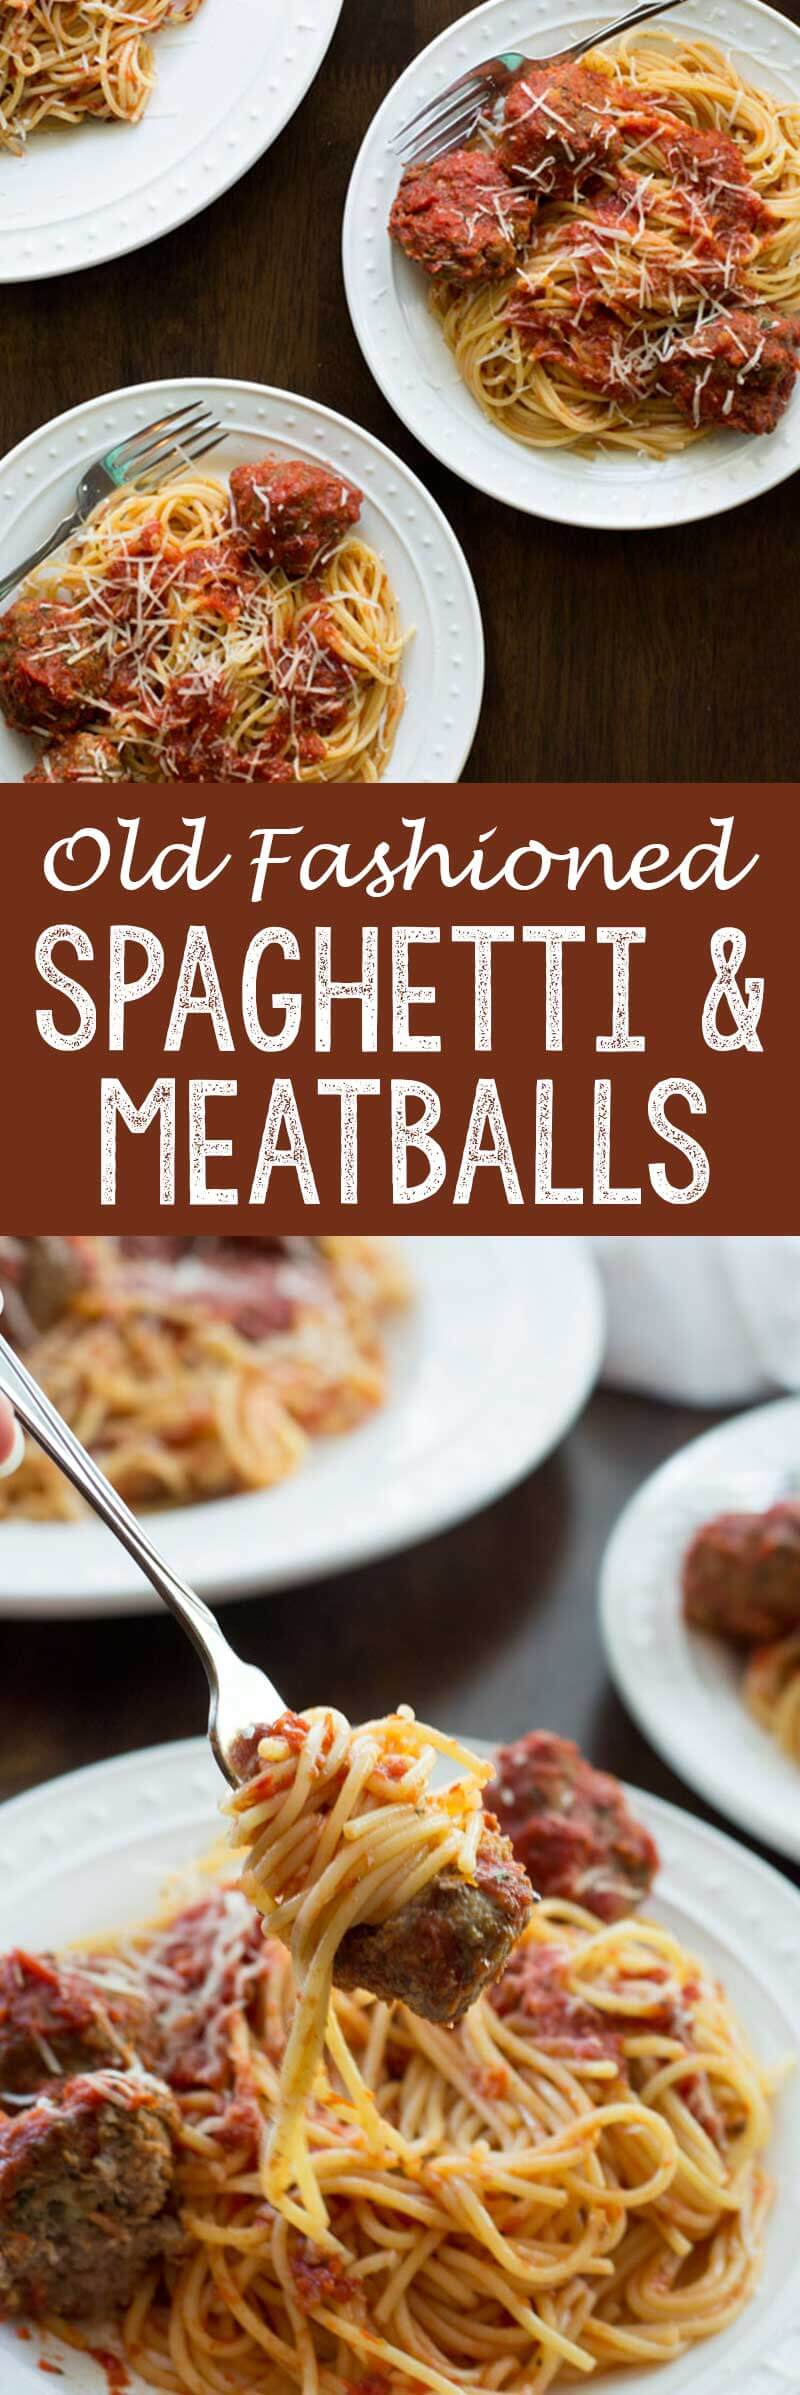 Old fashioned spaghetti and meatballs is better than grandma made and absolutely delicious